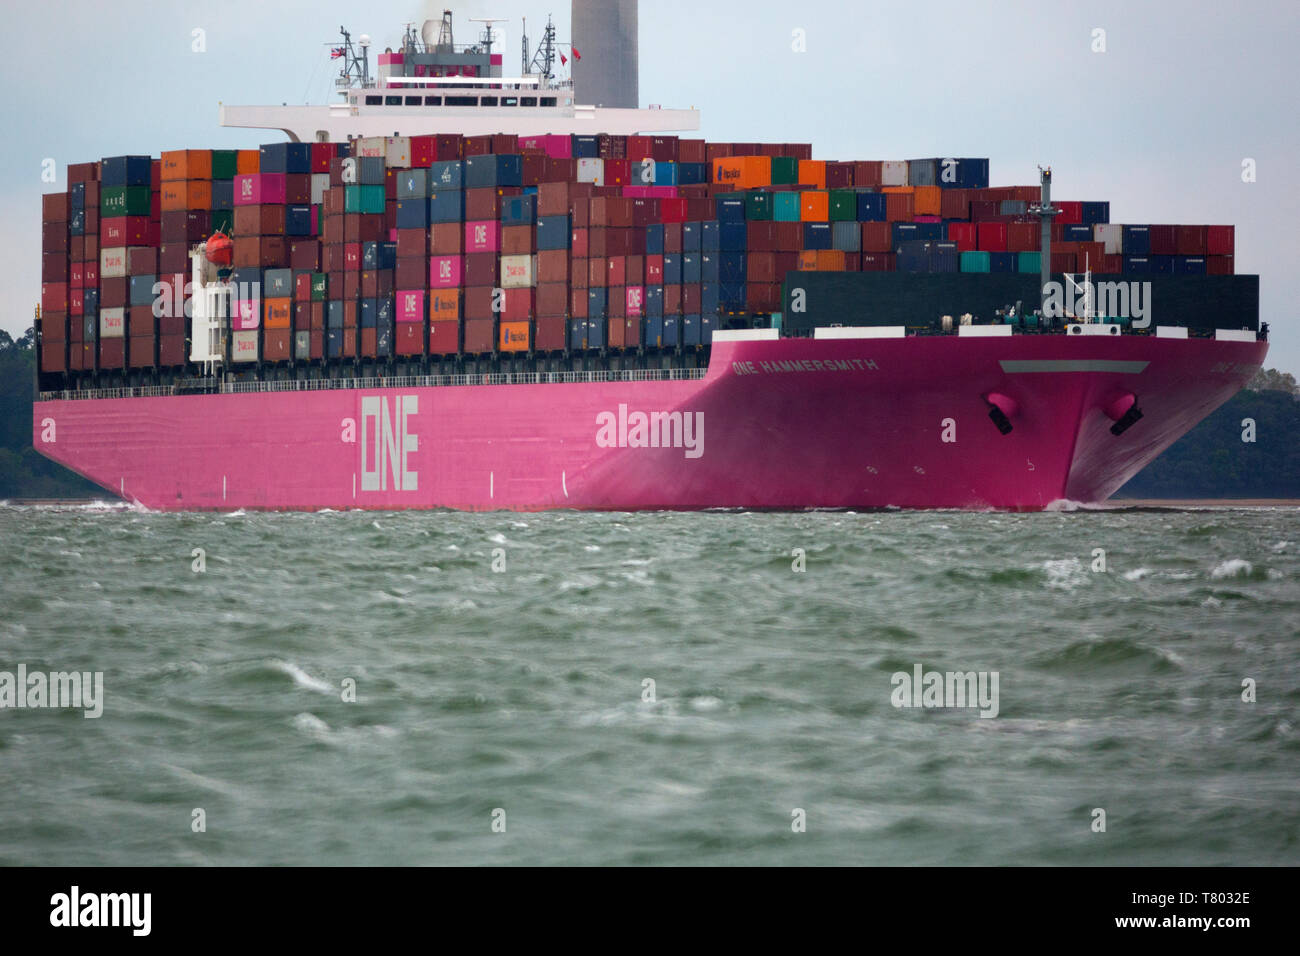 large,import,services,shipping,agent,port,harbour,master,launch,escort,pilot,Container,Ship,Southampton,Terminal,The Solent,China,Europe,import,trade, Stock Photo